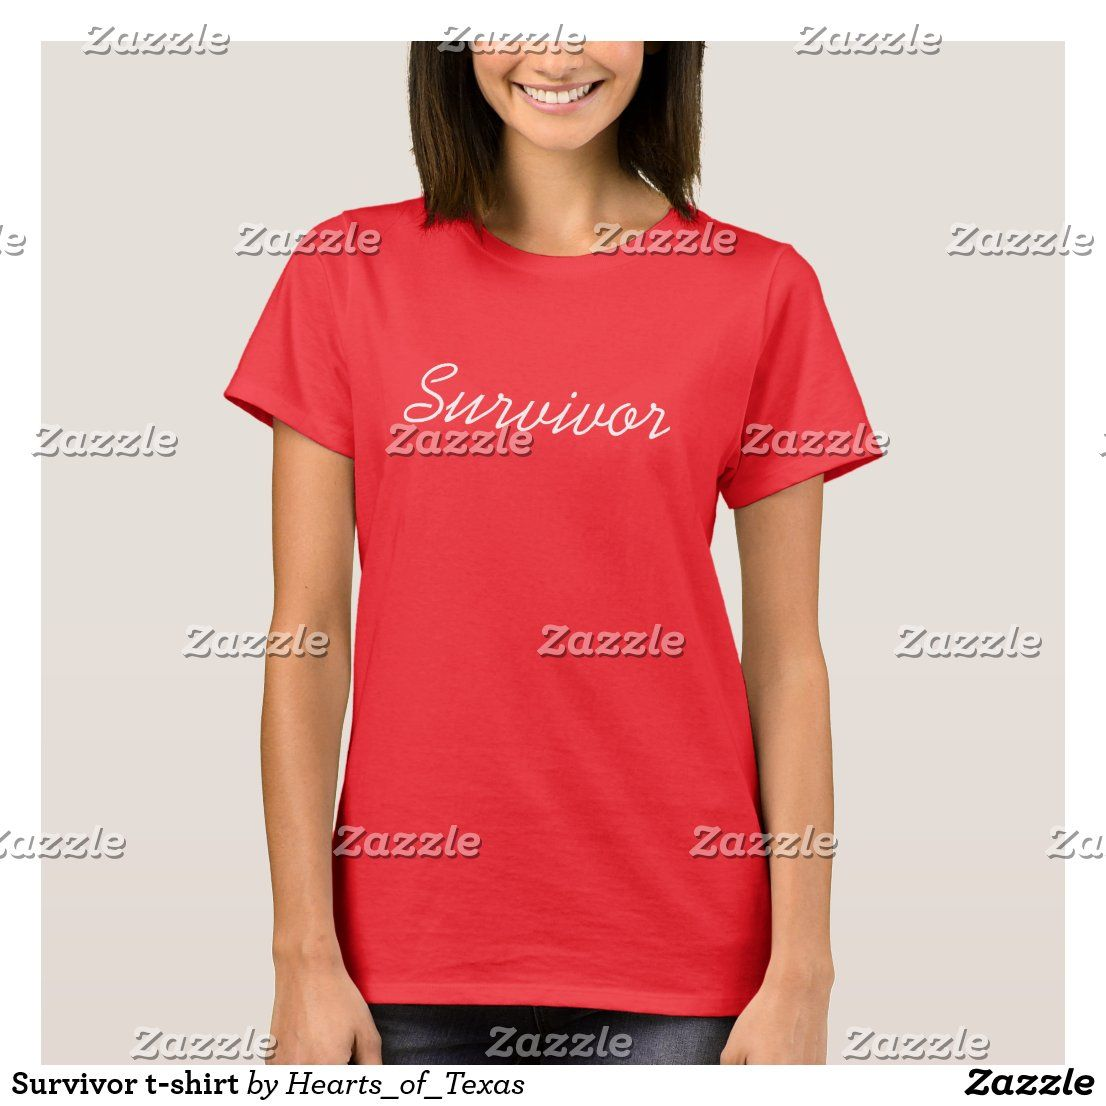 Survivor tshirt in 2020 T shirts for women